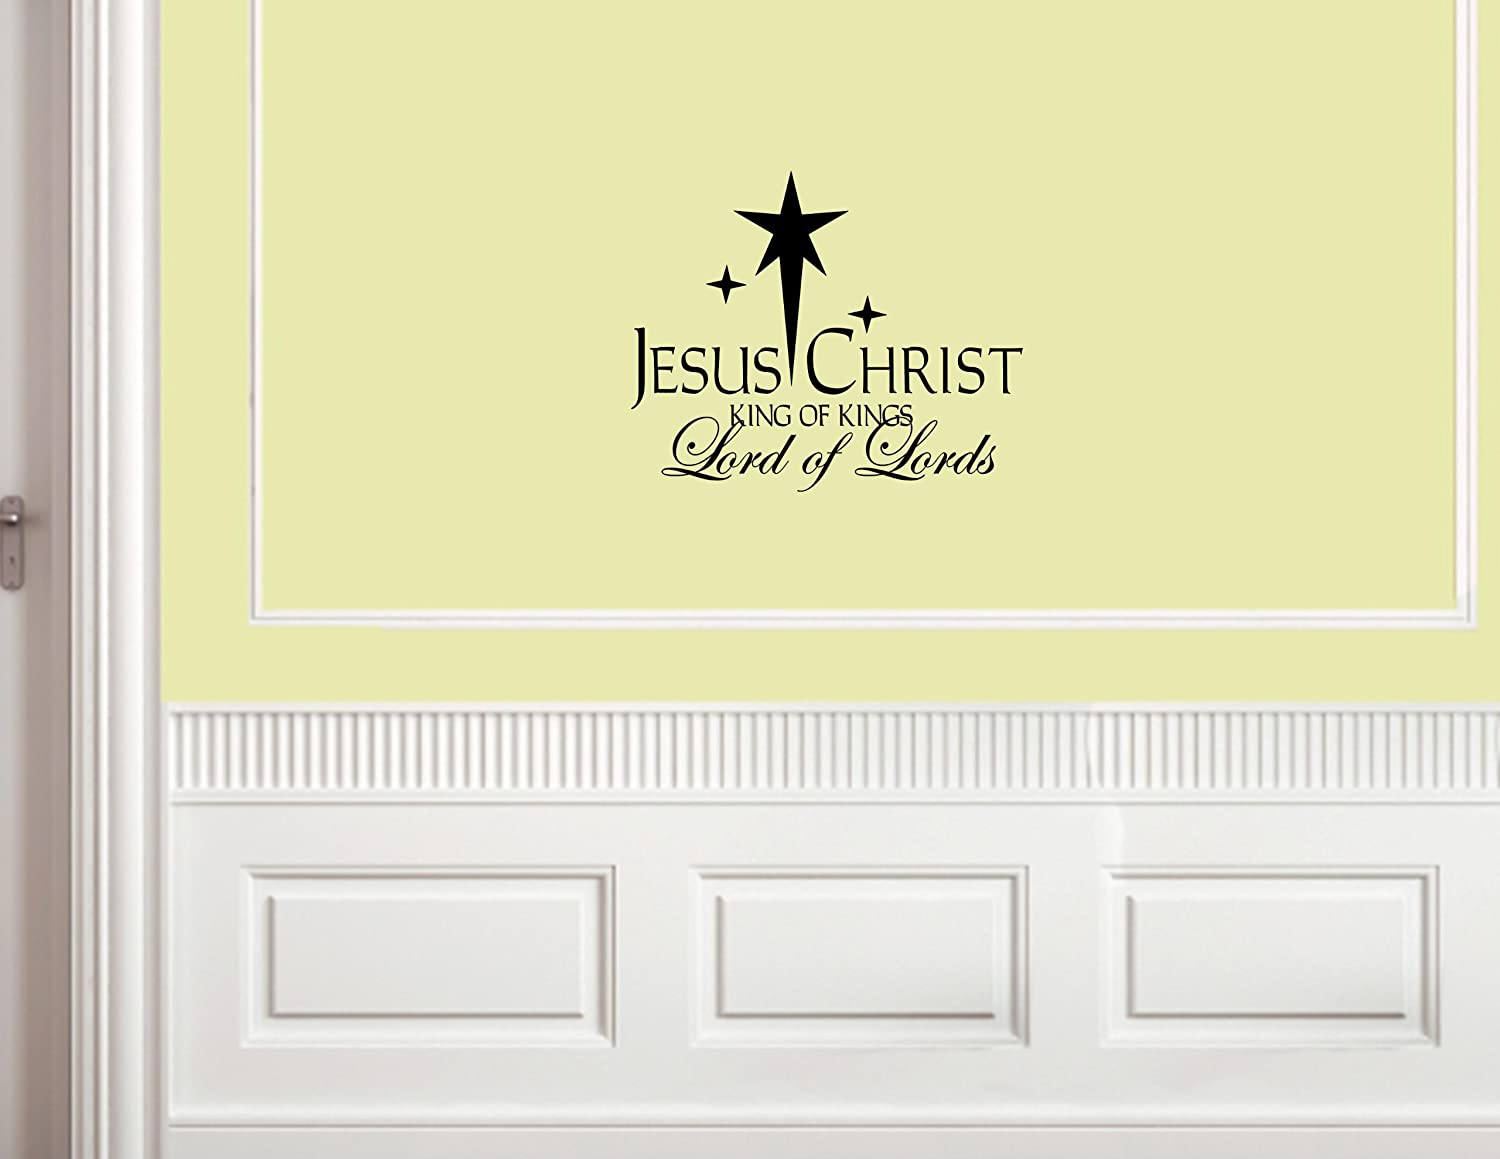 Amazon.com: Christmas Decoration Wall Decals Jesus Christ King of ...